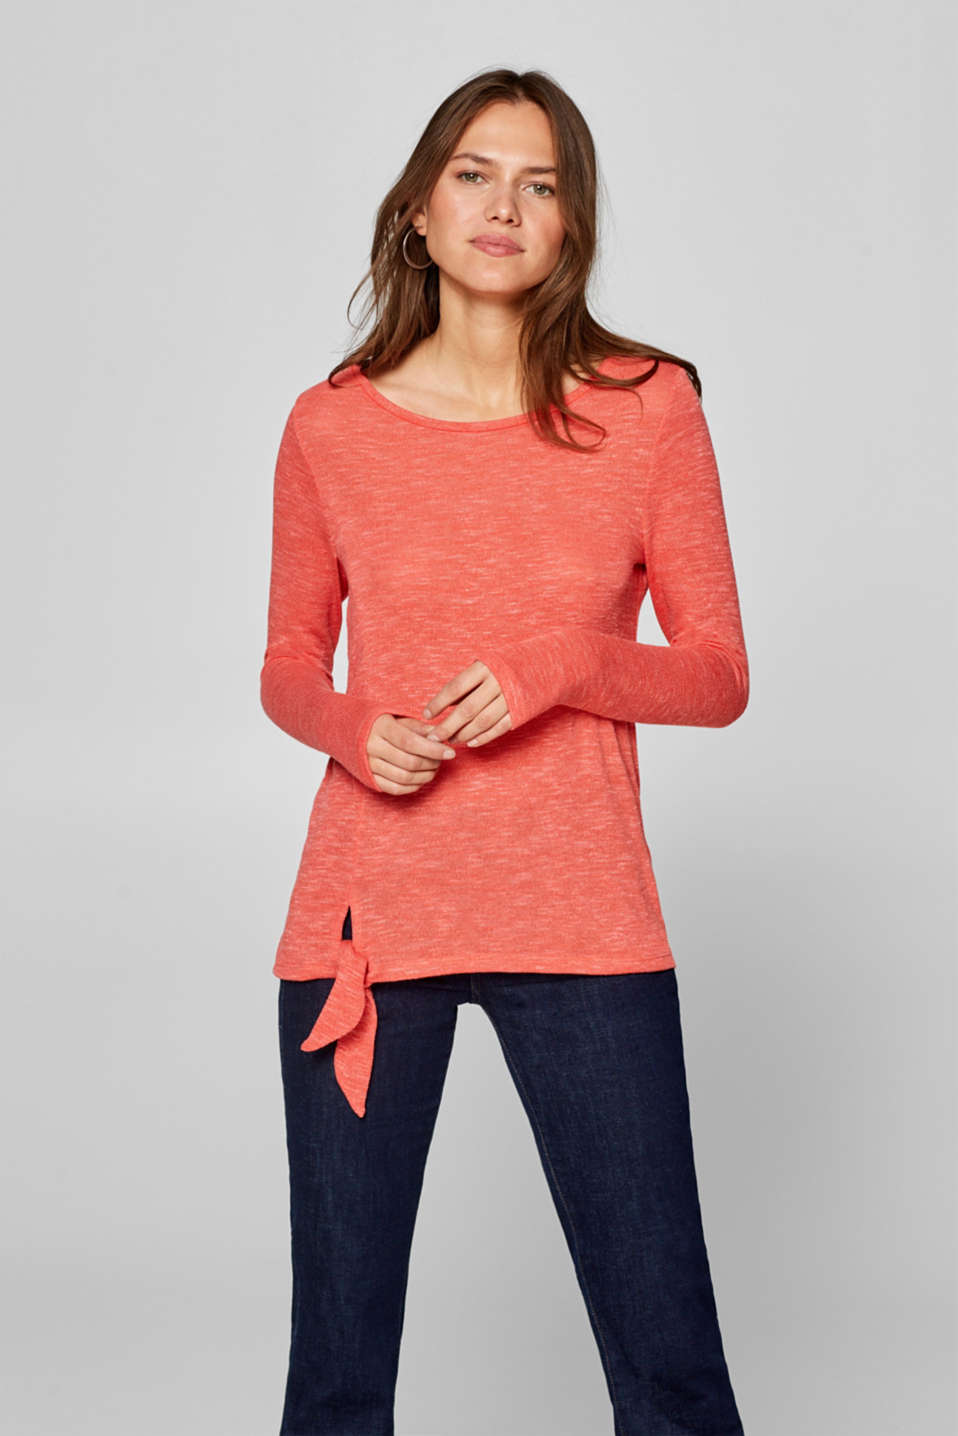 Esprit - Knot detail long sleeve top in melange jersey